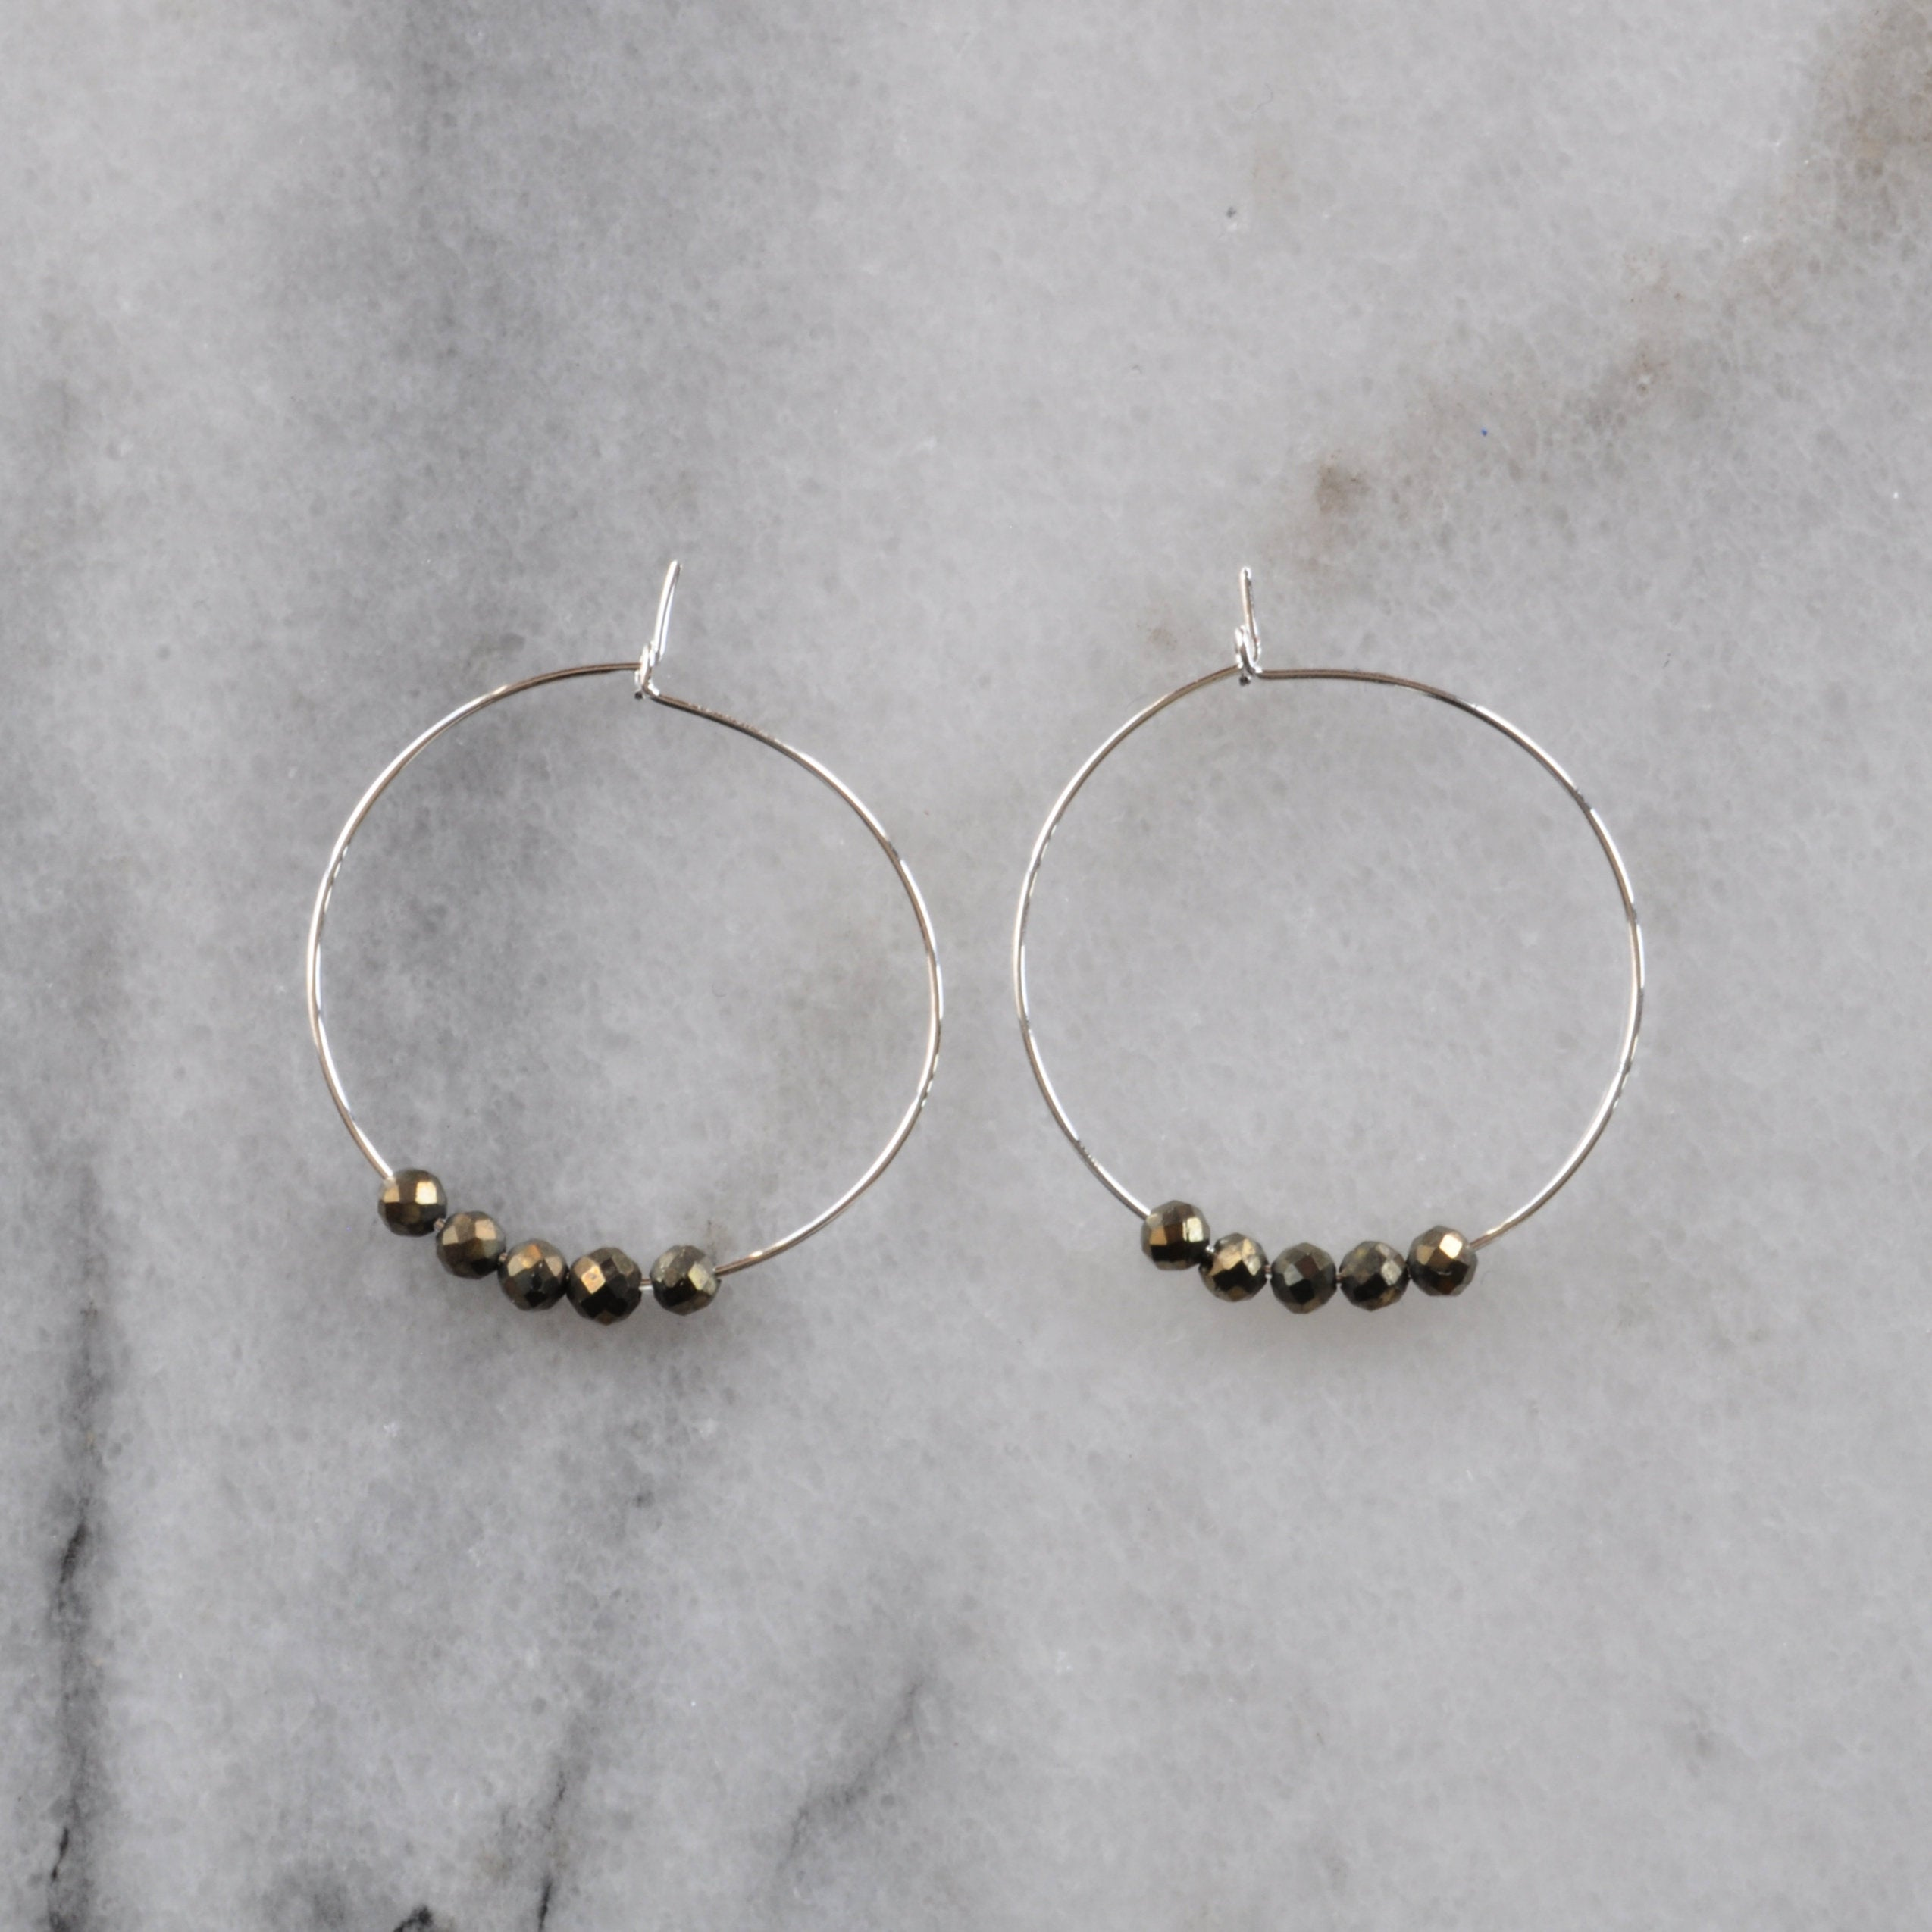 Libby & Smee Small Pyrite Hoop Earrings on 25mm silver plated hoops, still life